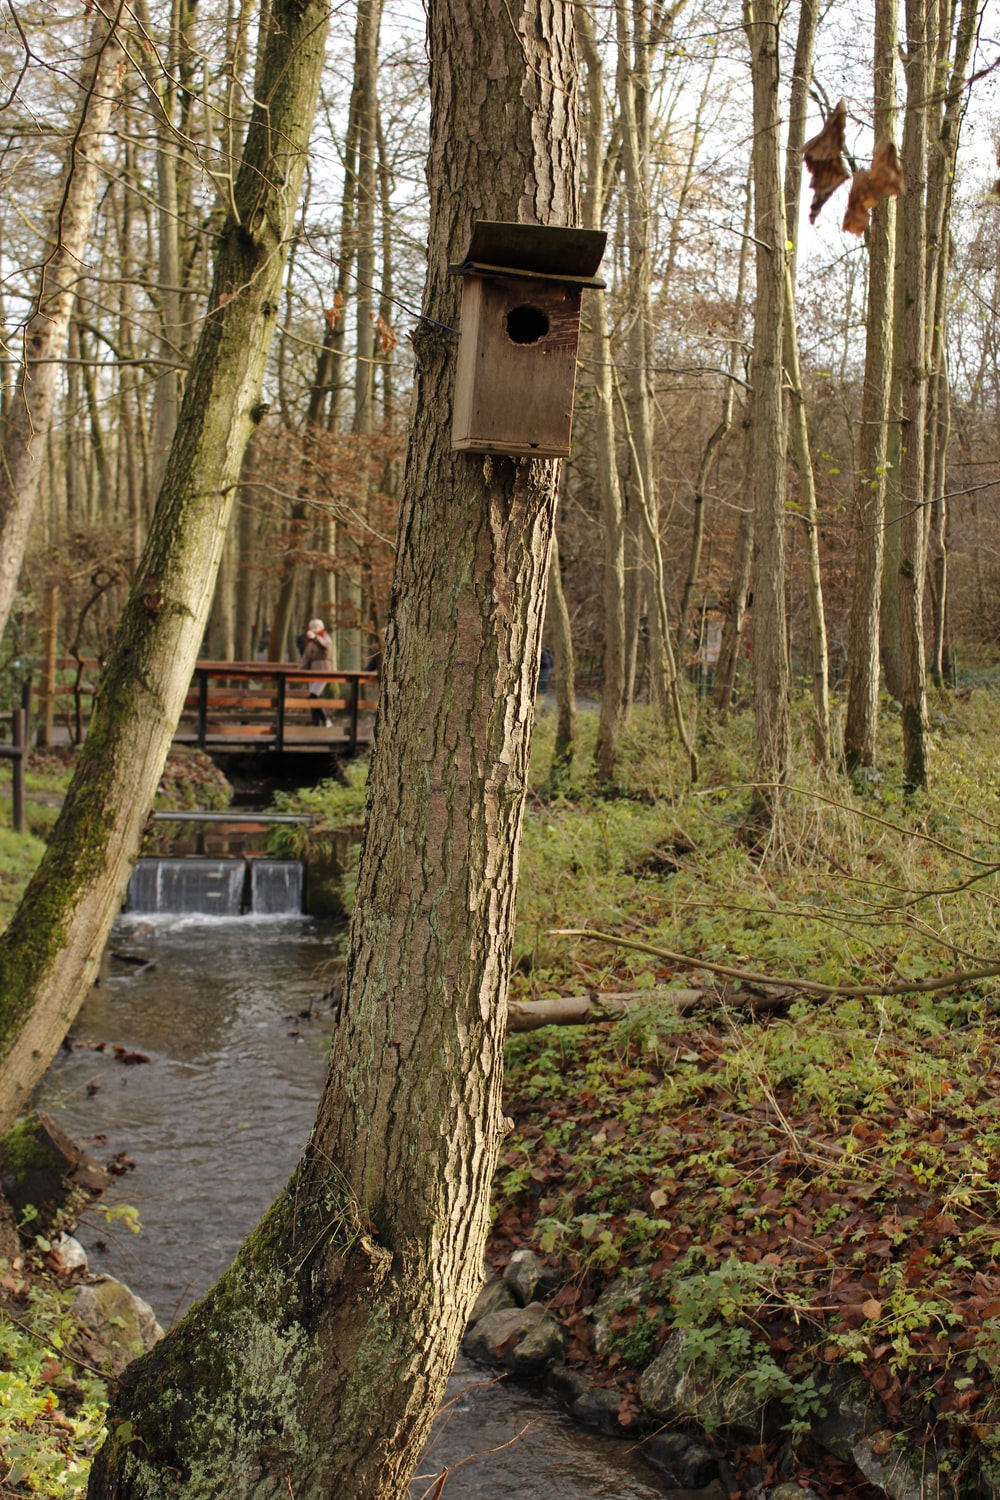 brown wooden birdhouse on brown tree trunk near river during daytime